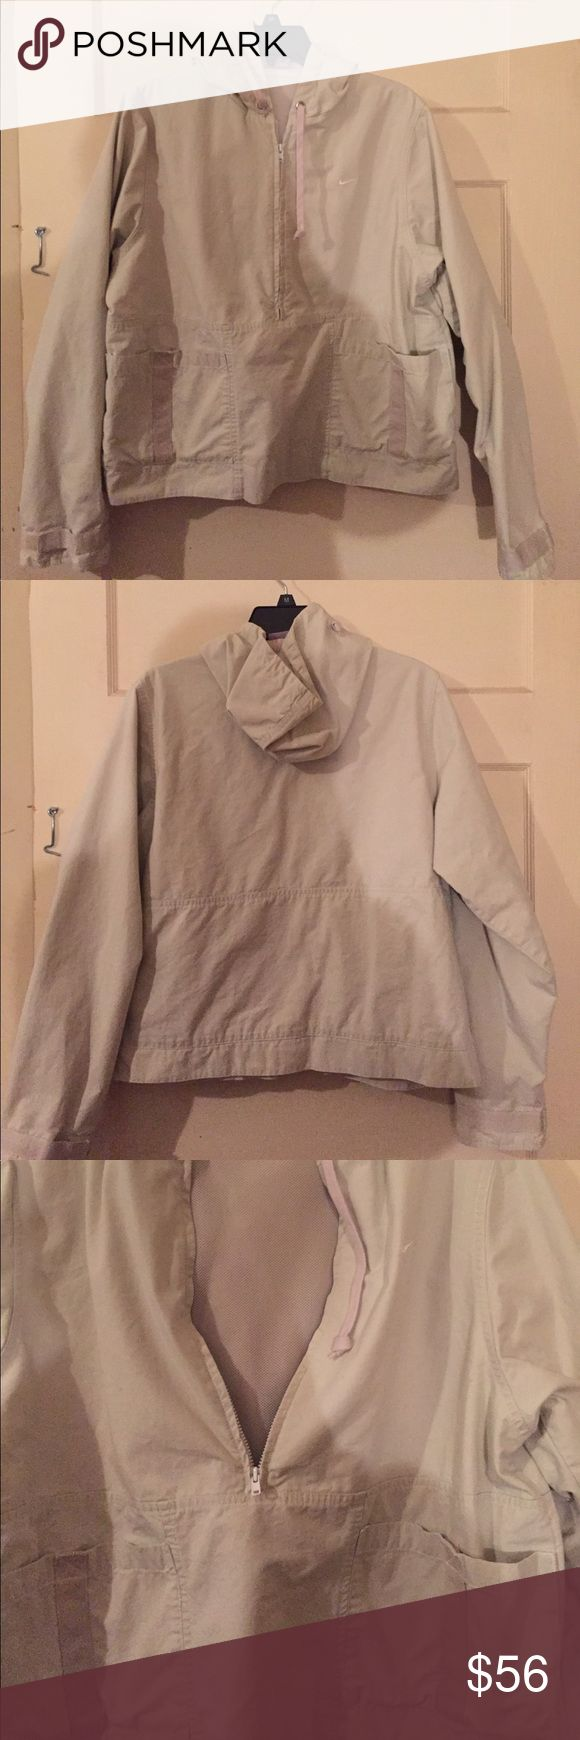 Women's Nike jacket🌸 Light Khaki colored jacket... half zip front.. Velcro pockets on front.. sleeves also have Velcro to tighten or loosen... also has a good.. inside has mesh lining... see pics for material and washing instructions Nike Jackets & Coats